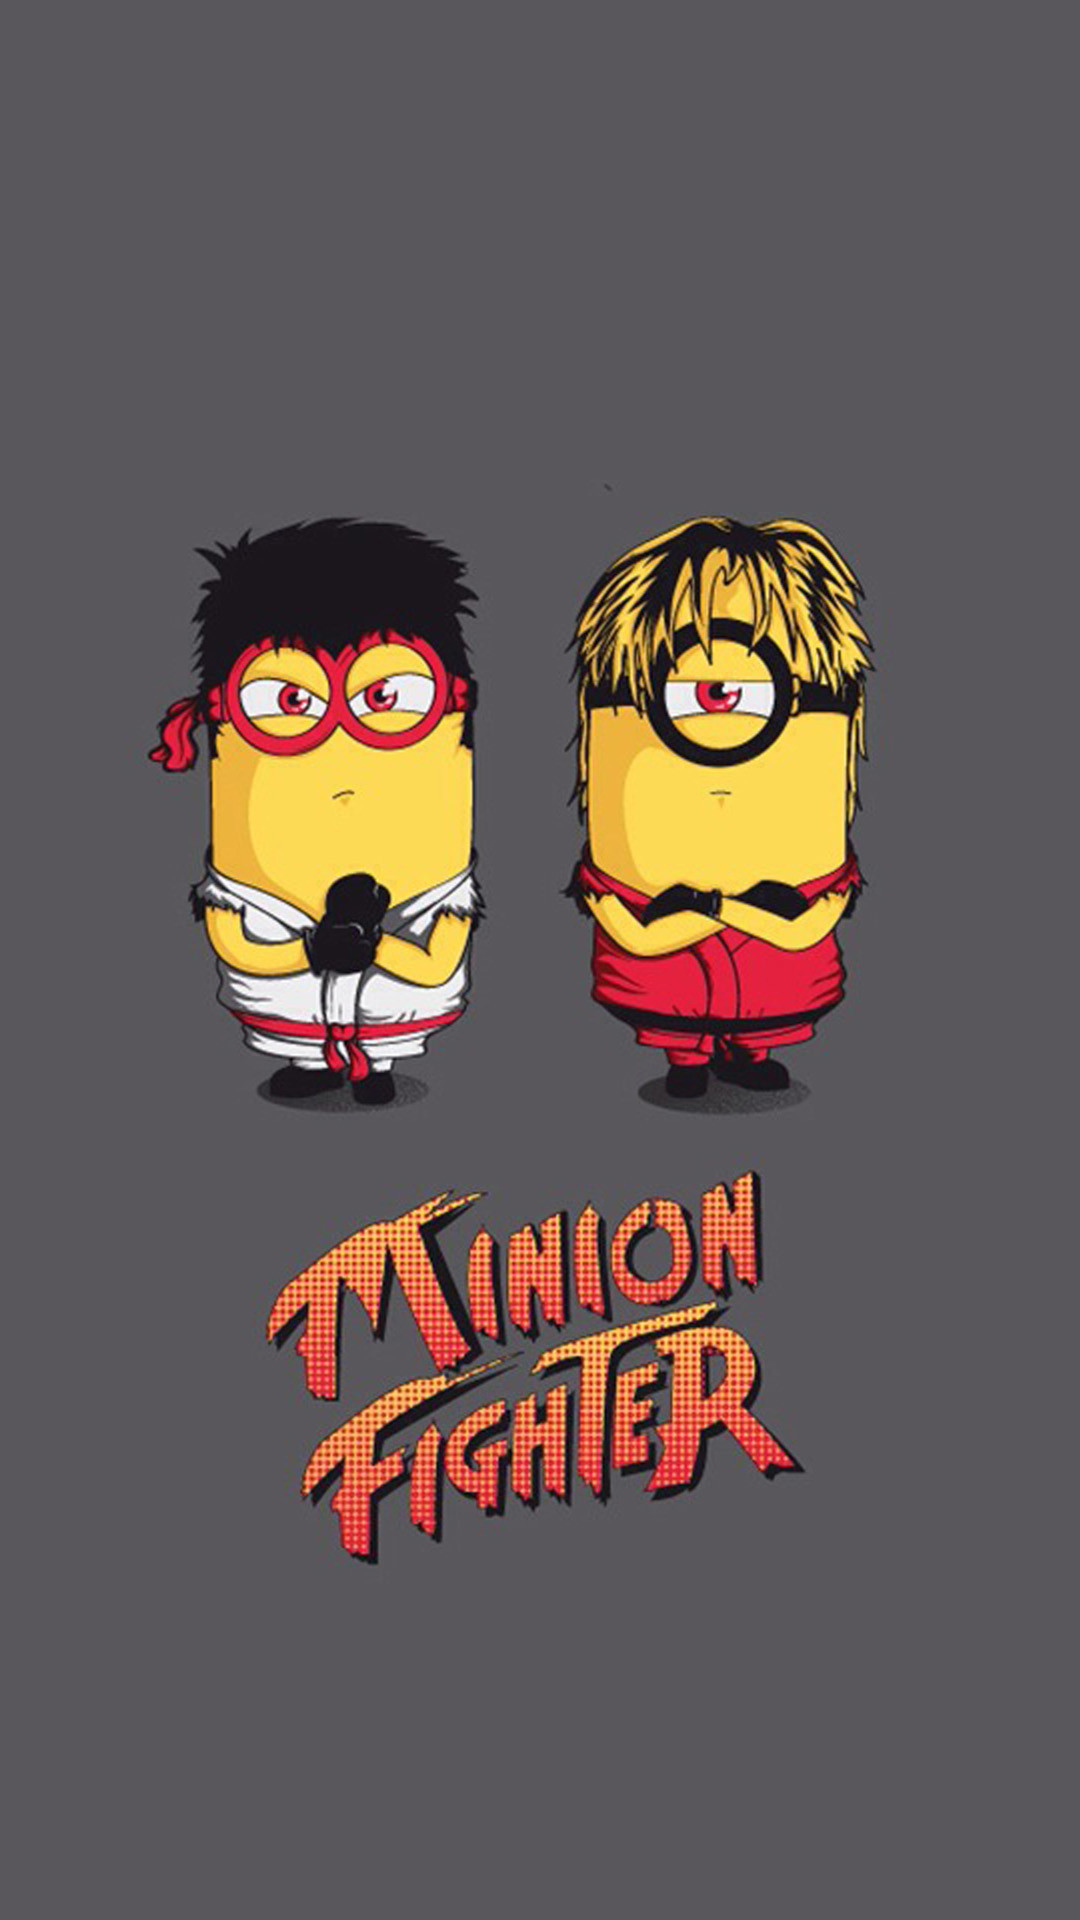 1080x1920 Funny Minion Fighter HD Wallpaper iPhone 6 plus